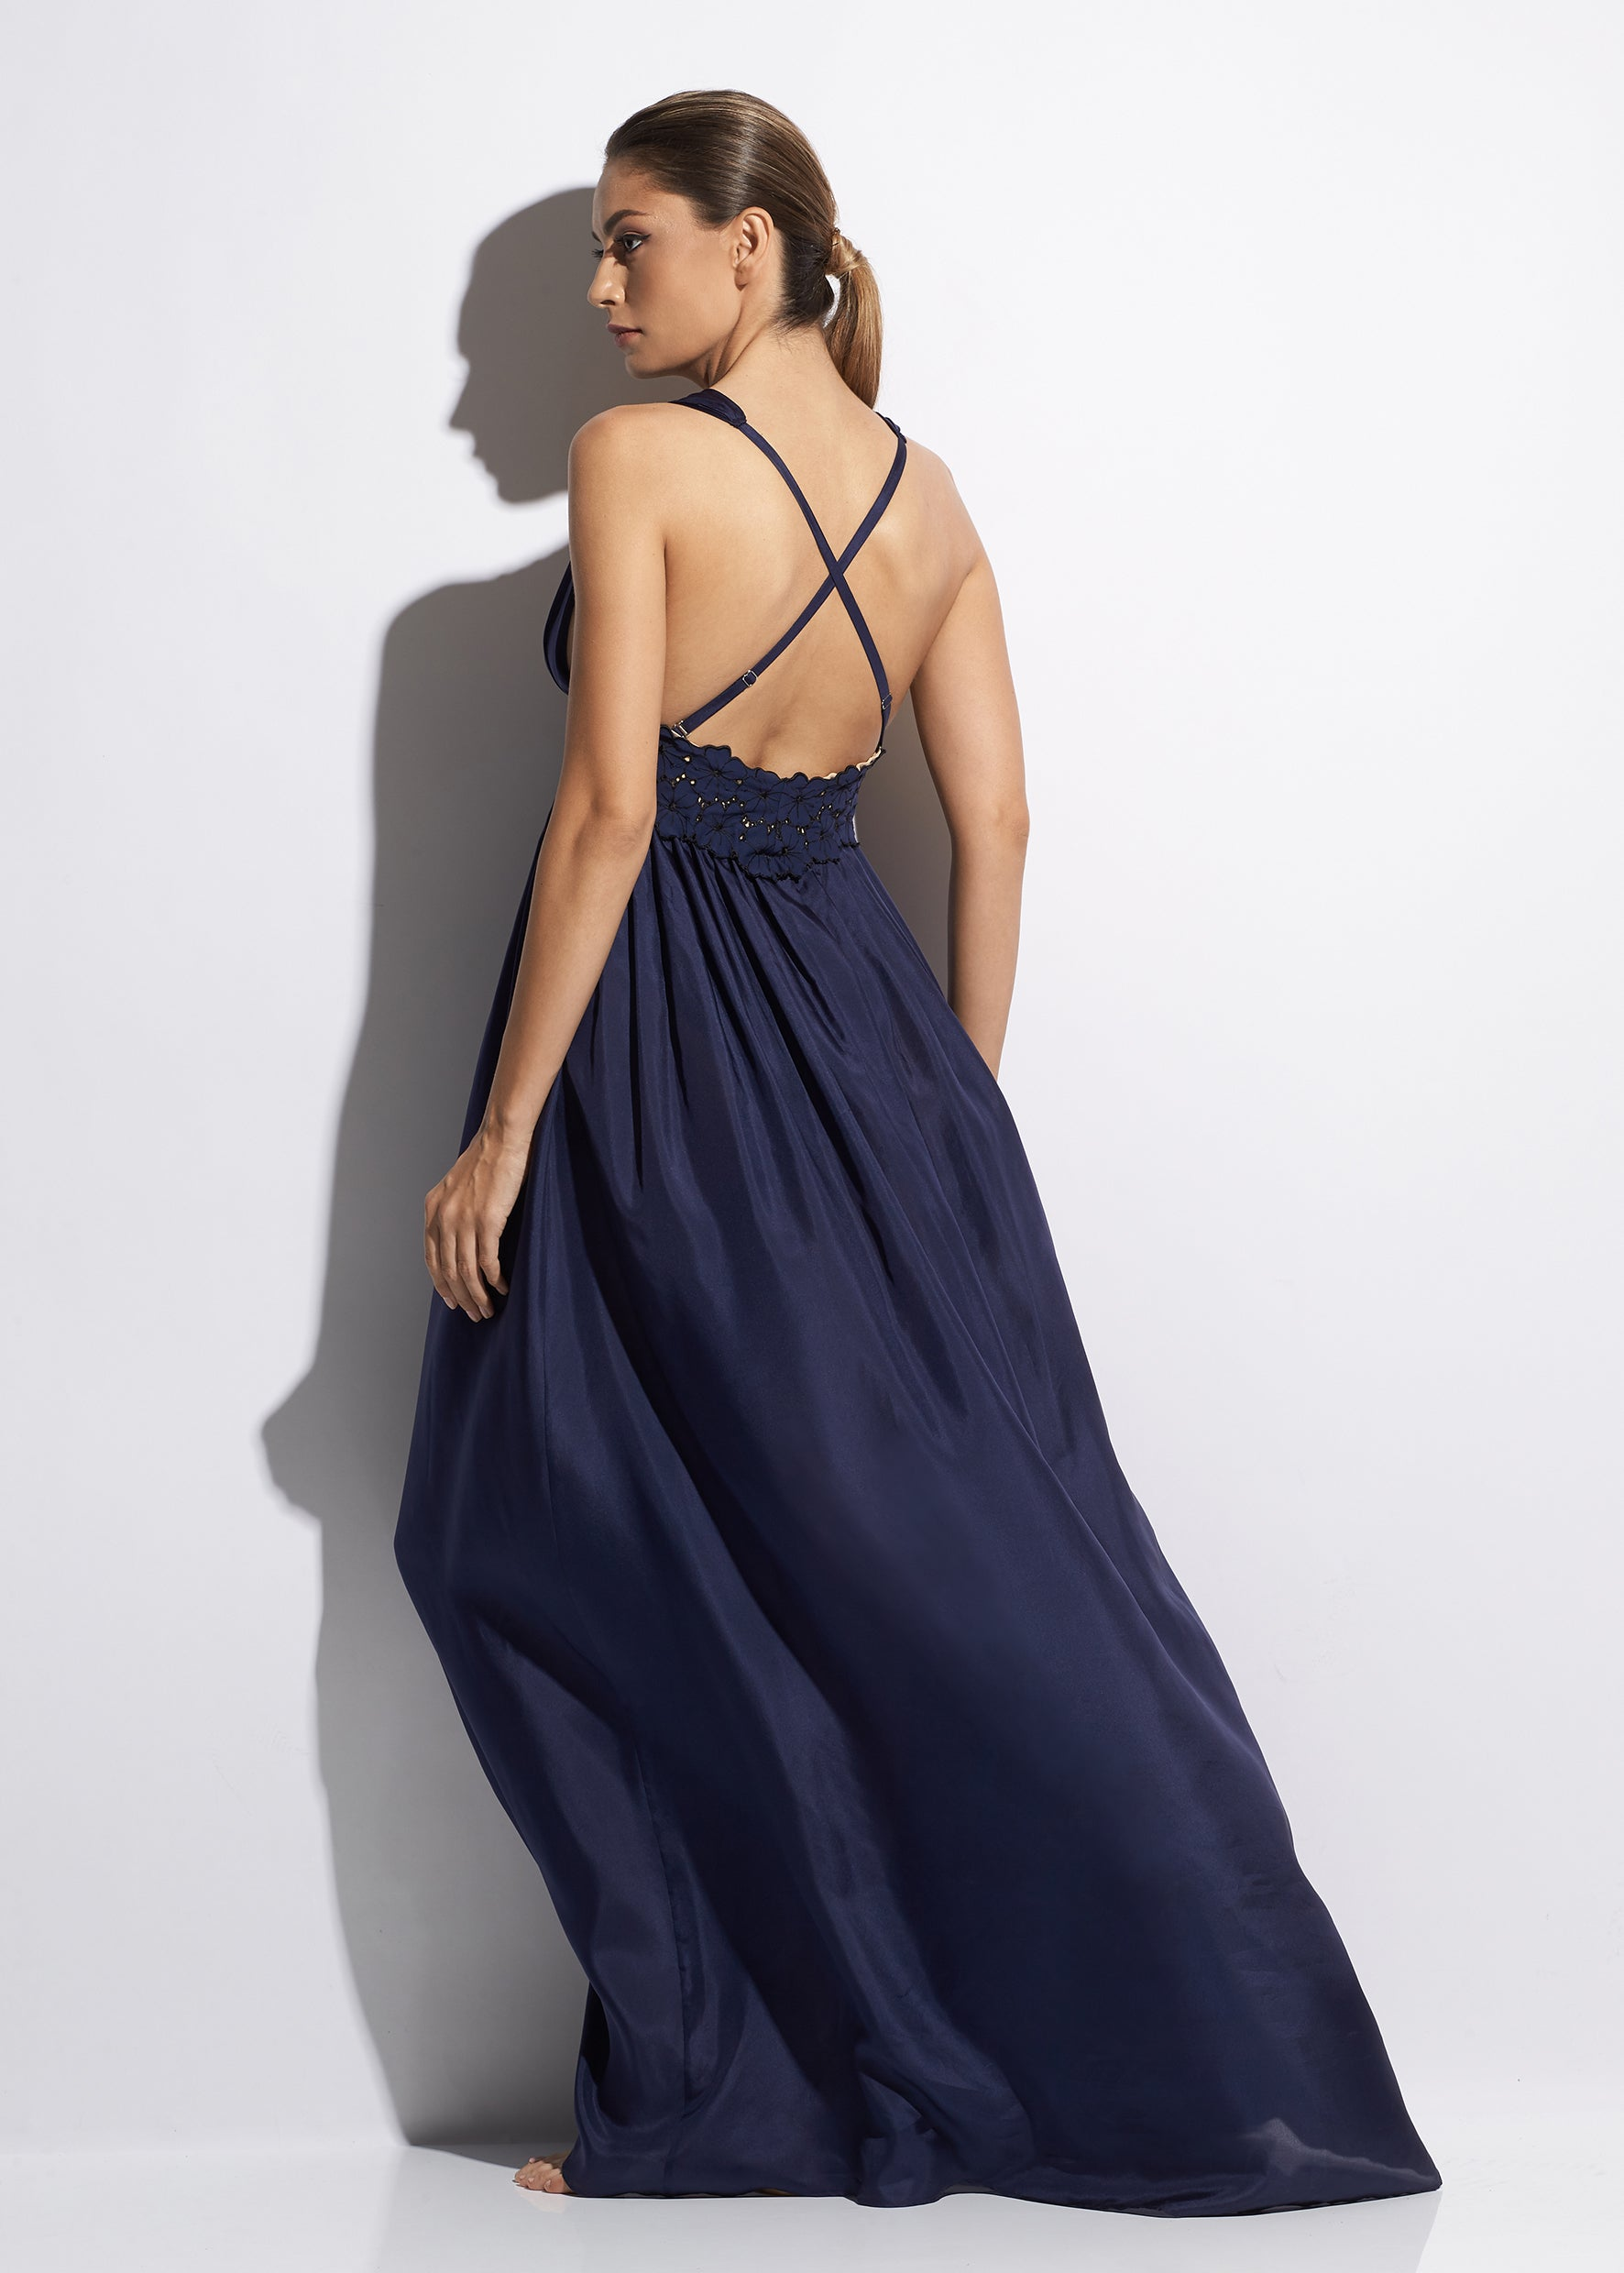 Malibu Sunshine Silk Long Dress in Navy